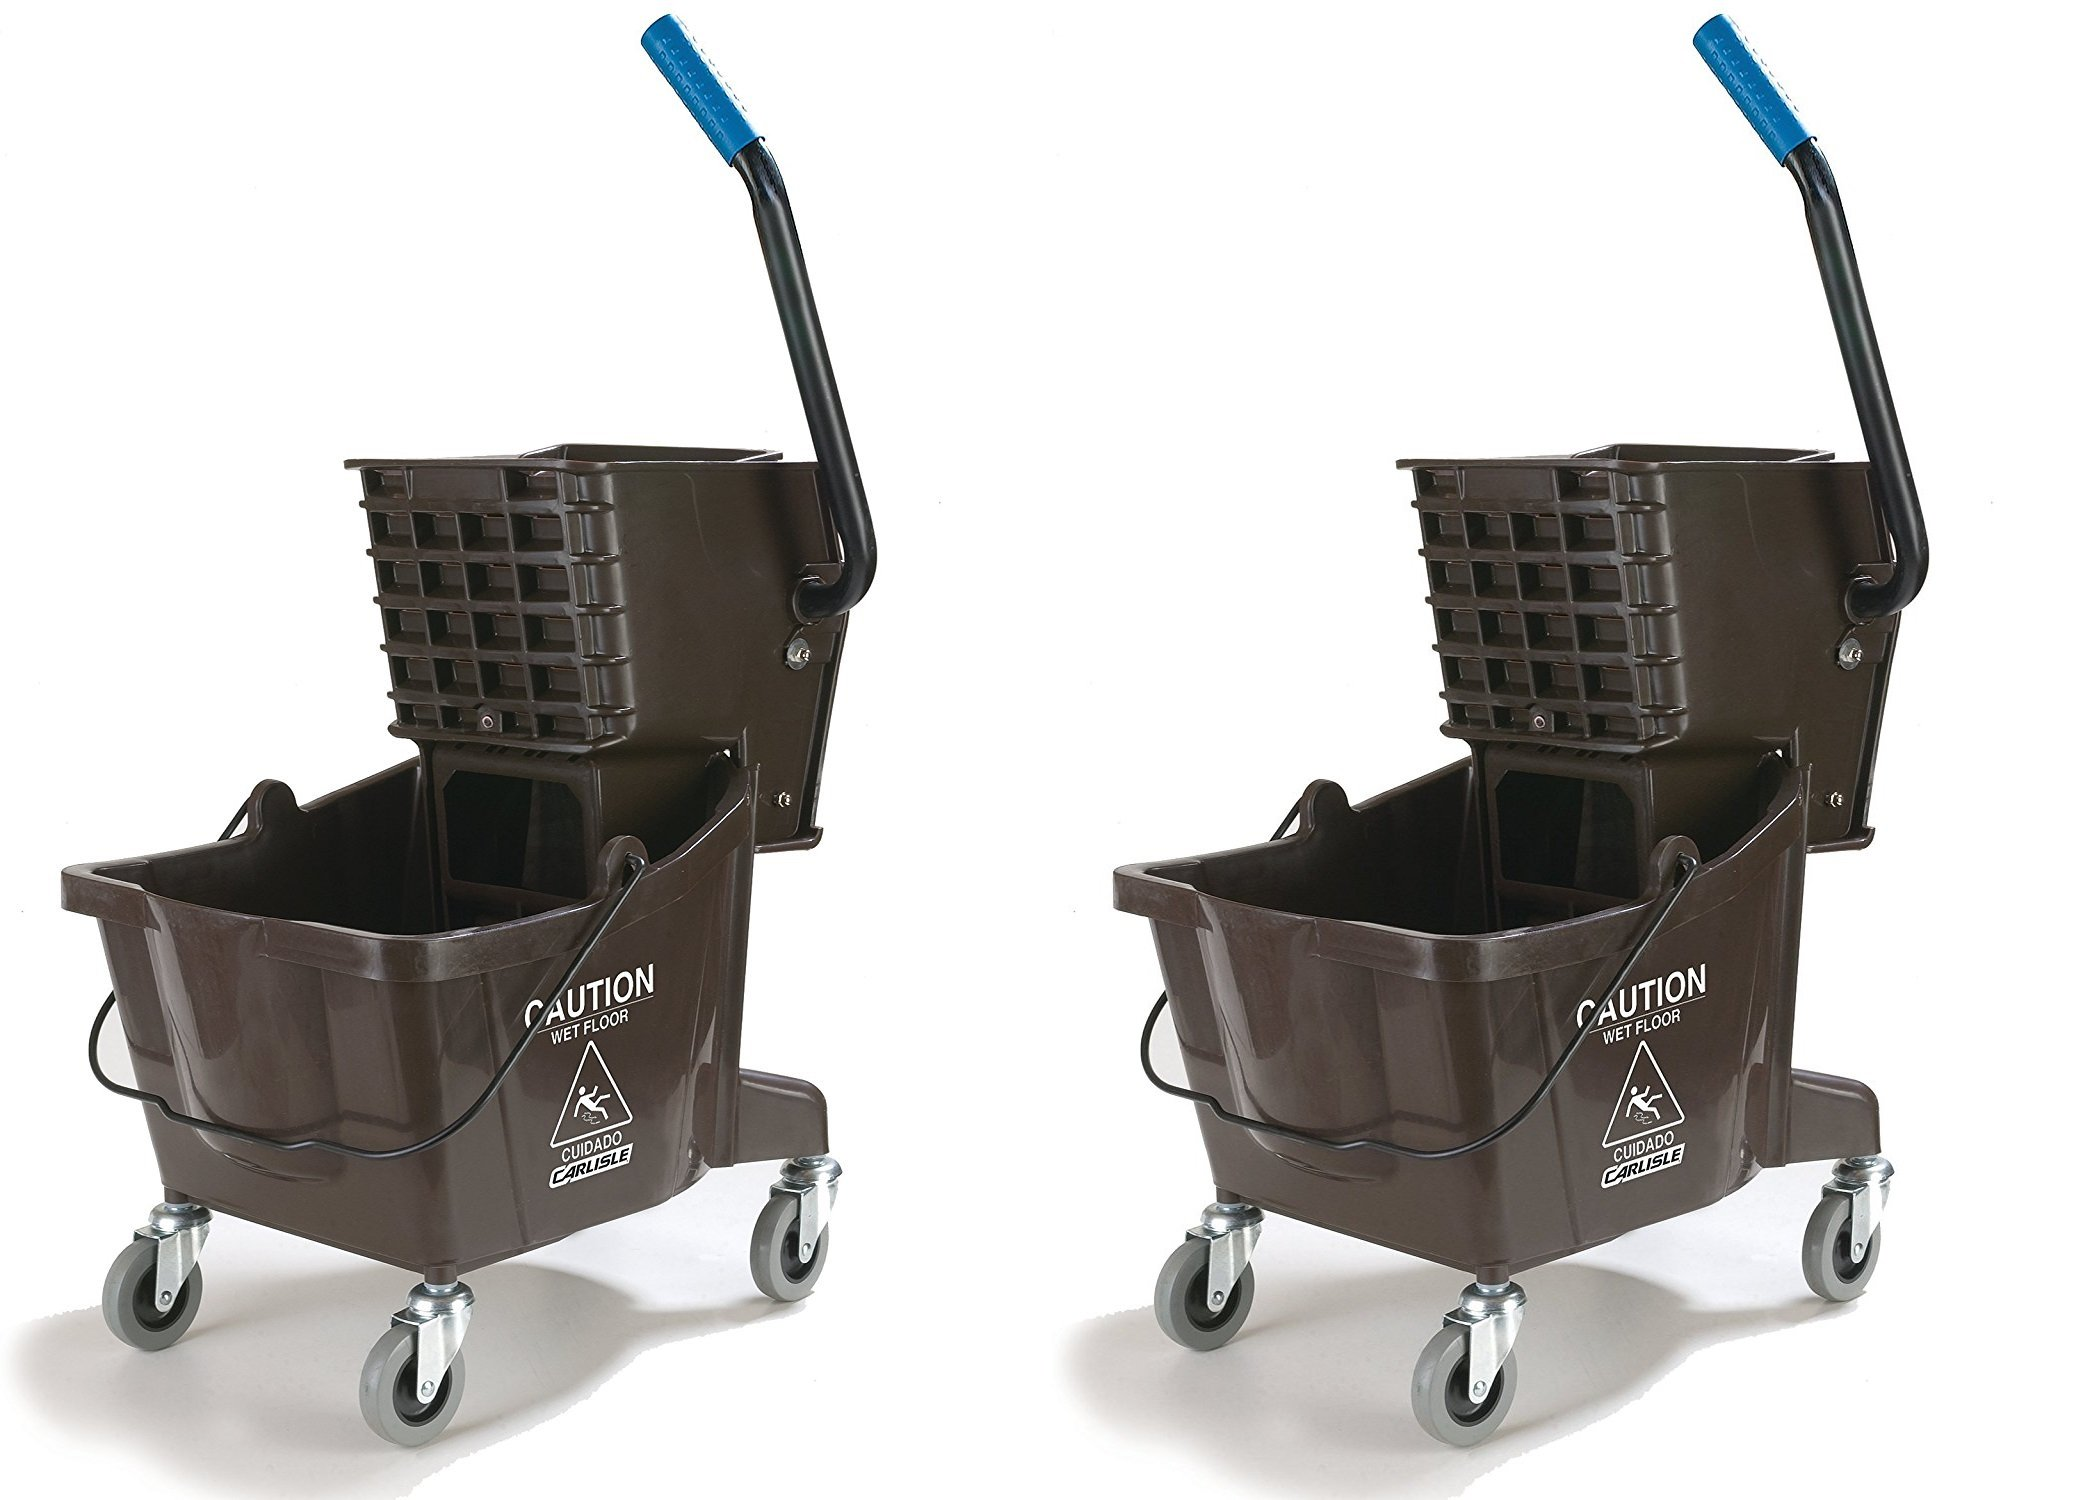 Carlisle 3690869 Commercial Mop Bucket With Side Press Wringer, 26 Quart Capacity, Brown (2 PACK)